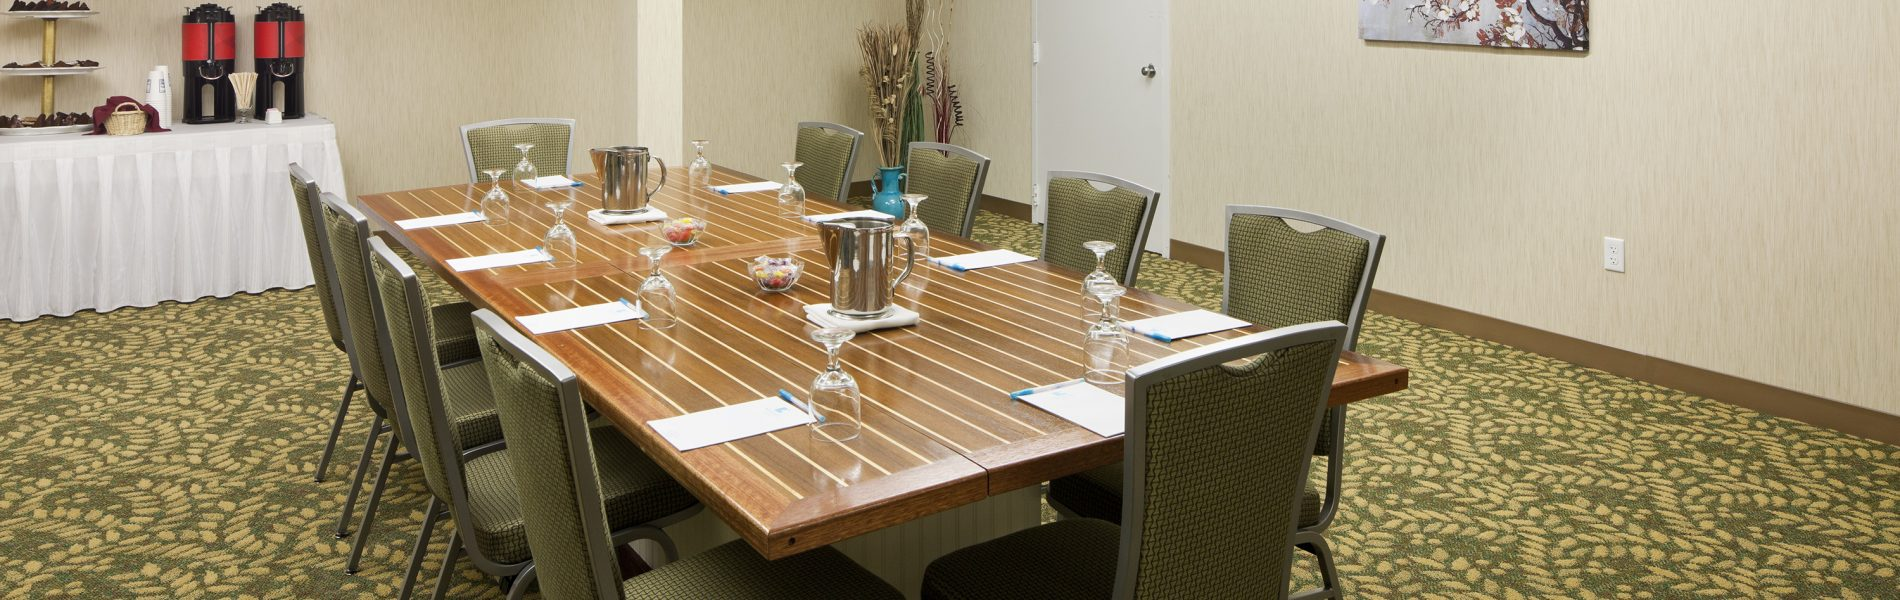 Cape Cod Meetings Rooms - Experience Sea Crest Beach Hotel